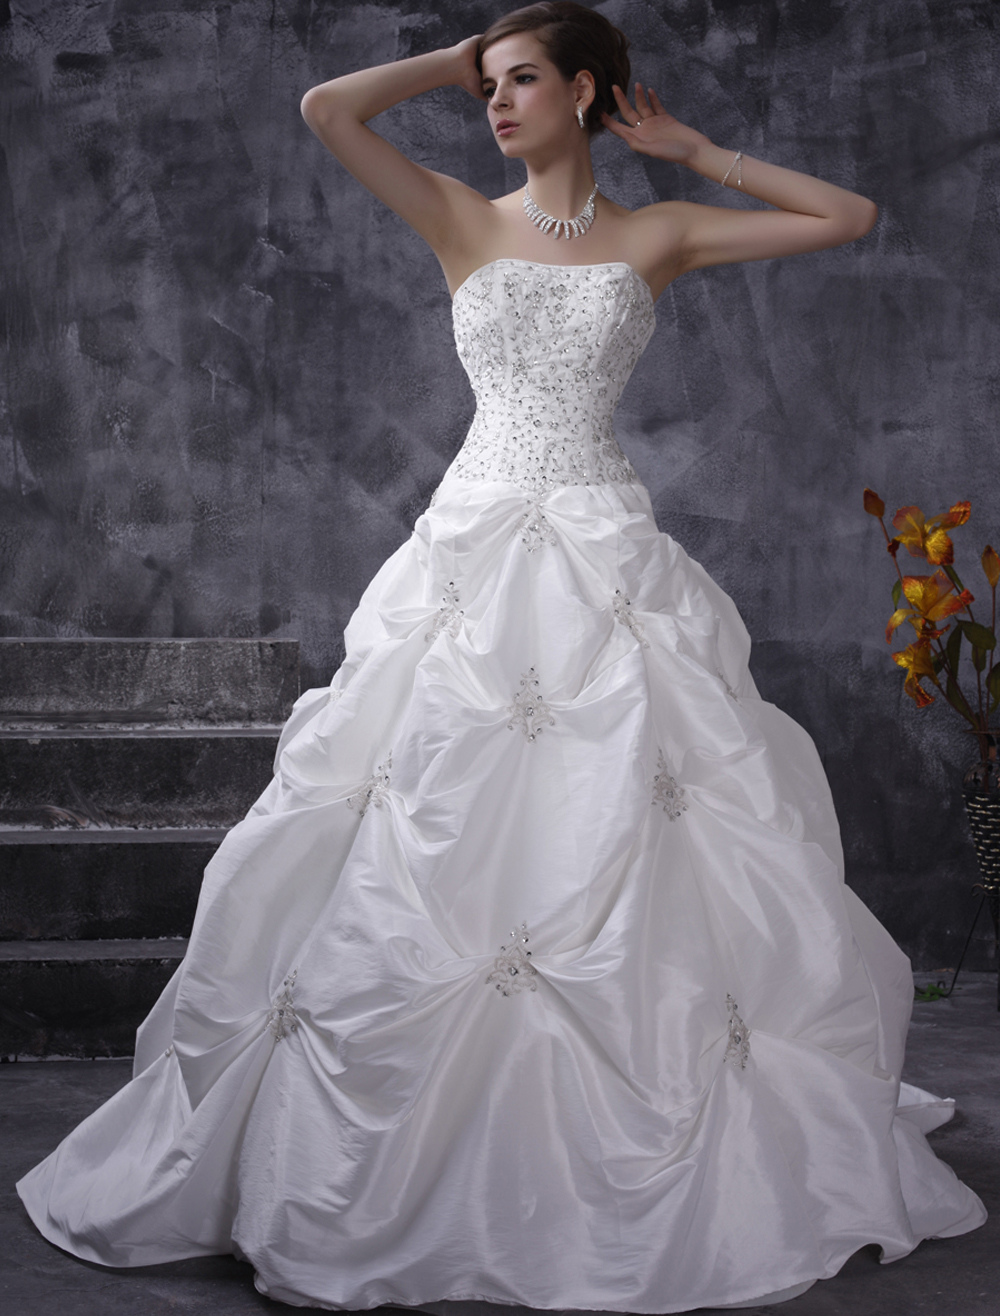 White Wedding Dresses Ball Gown Strapless Taffeta Ruched Bridal Dress Beading Chapel Train Bridal Gown